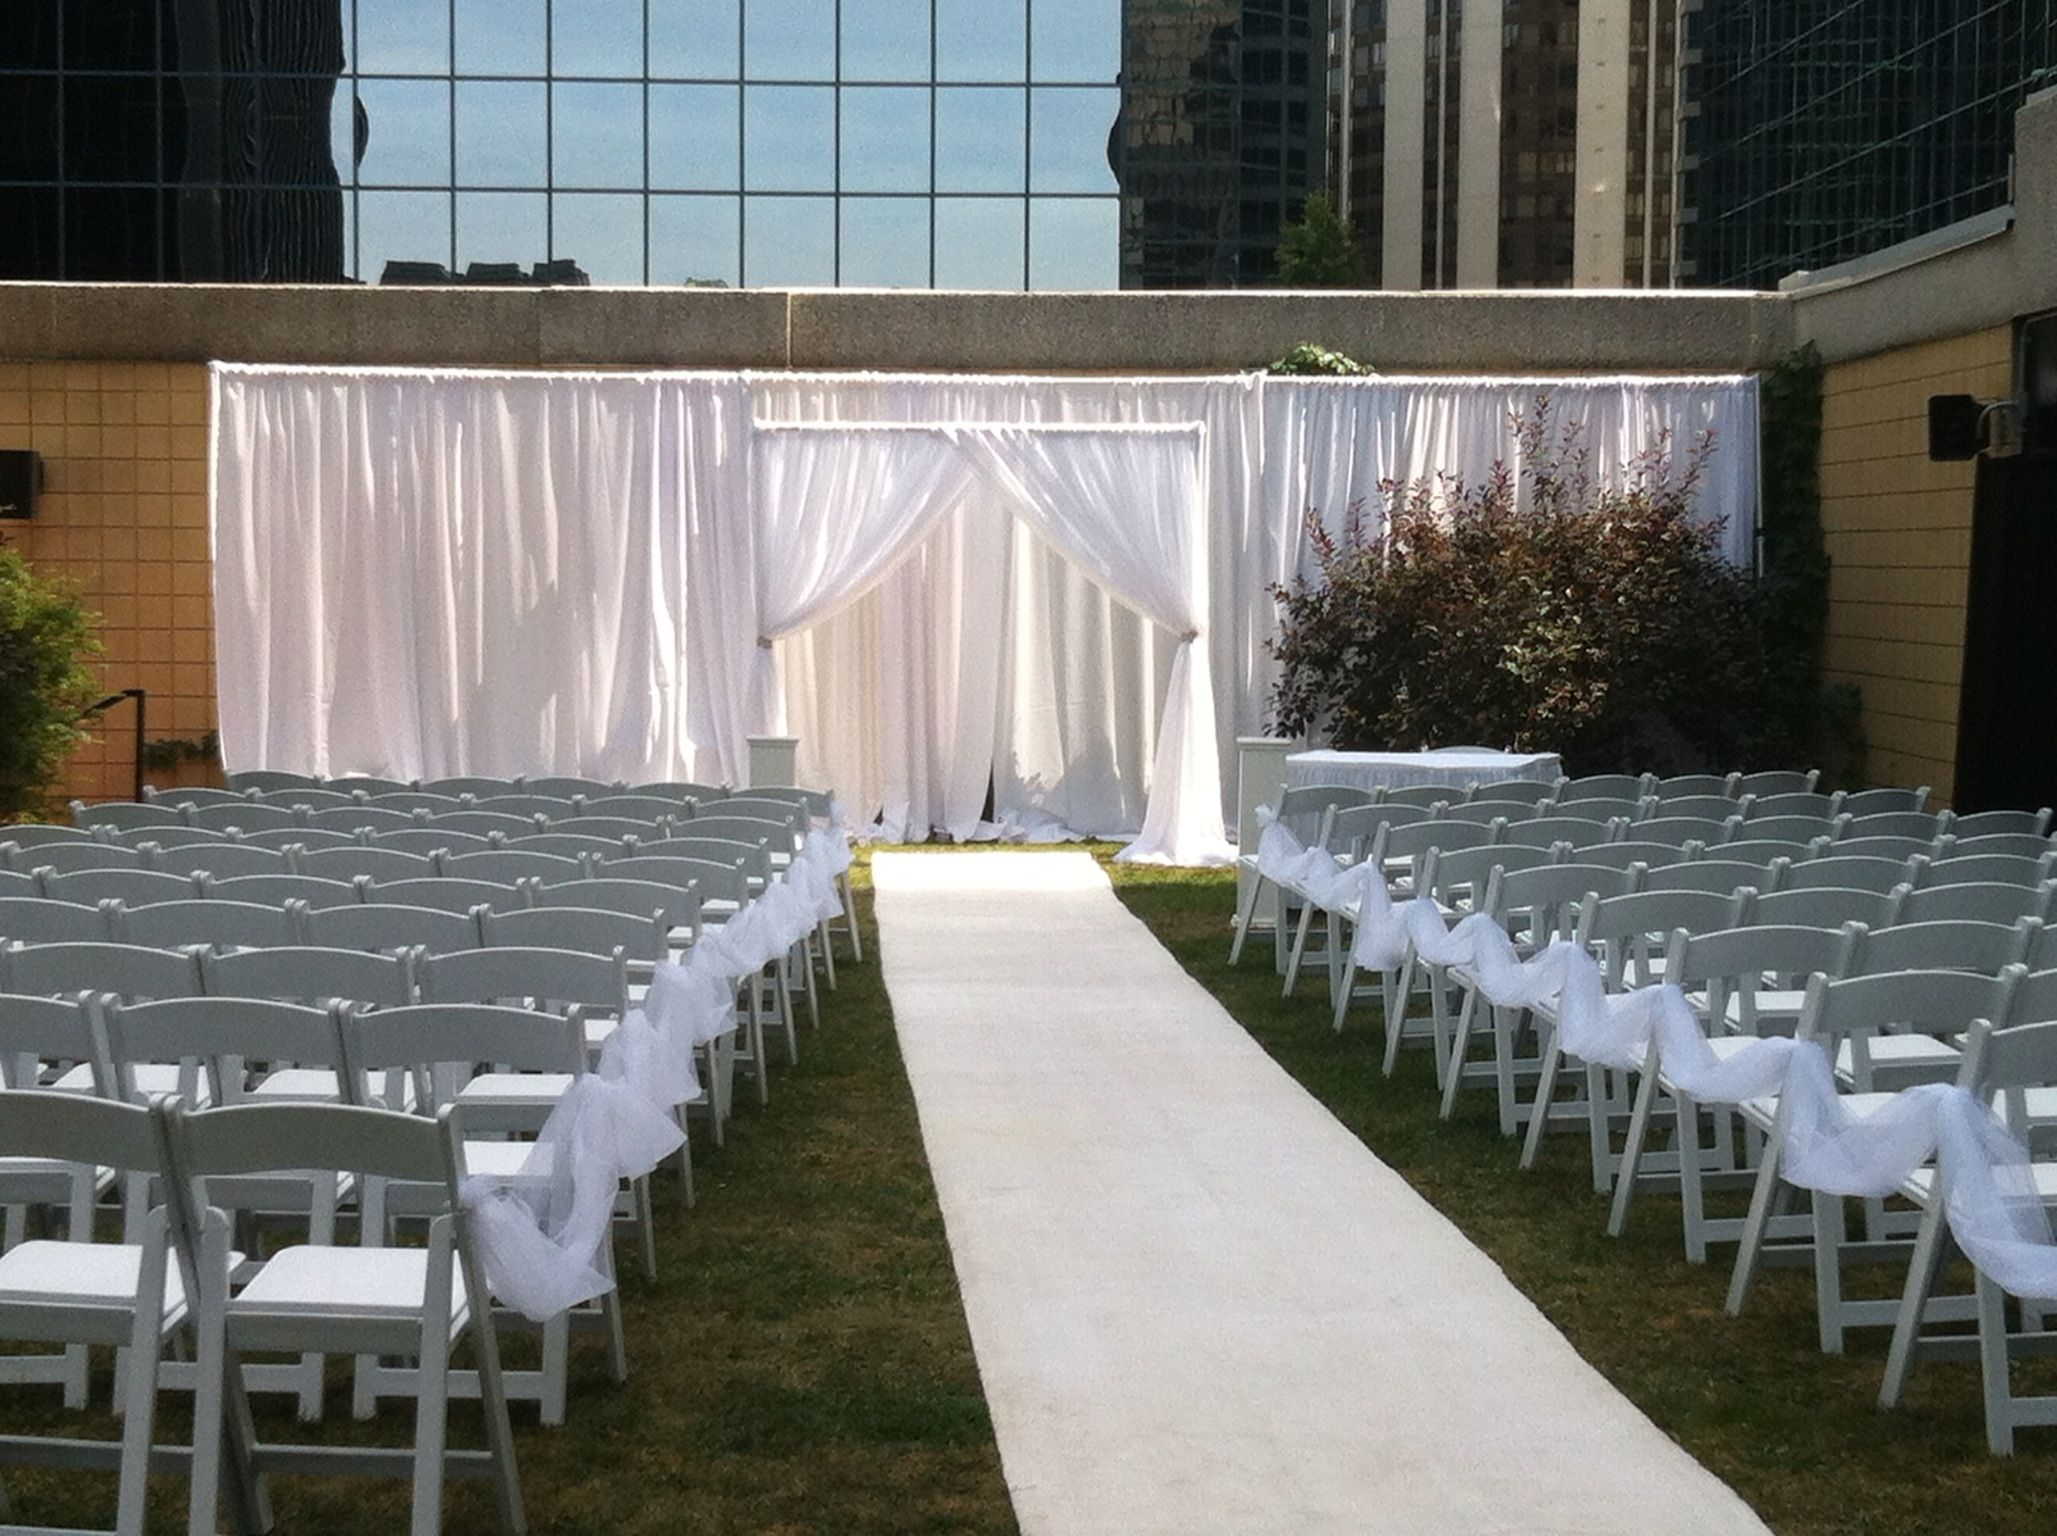 Outside ceremony. Flowing white fabric dresses up a plain garden wall